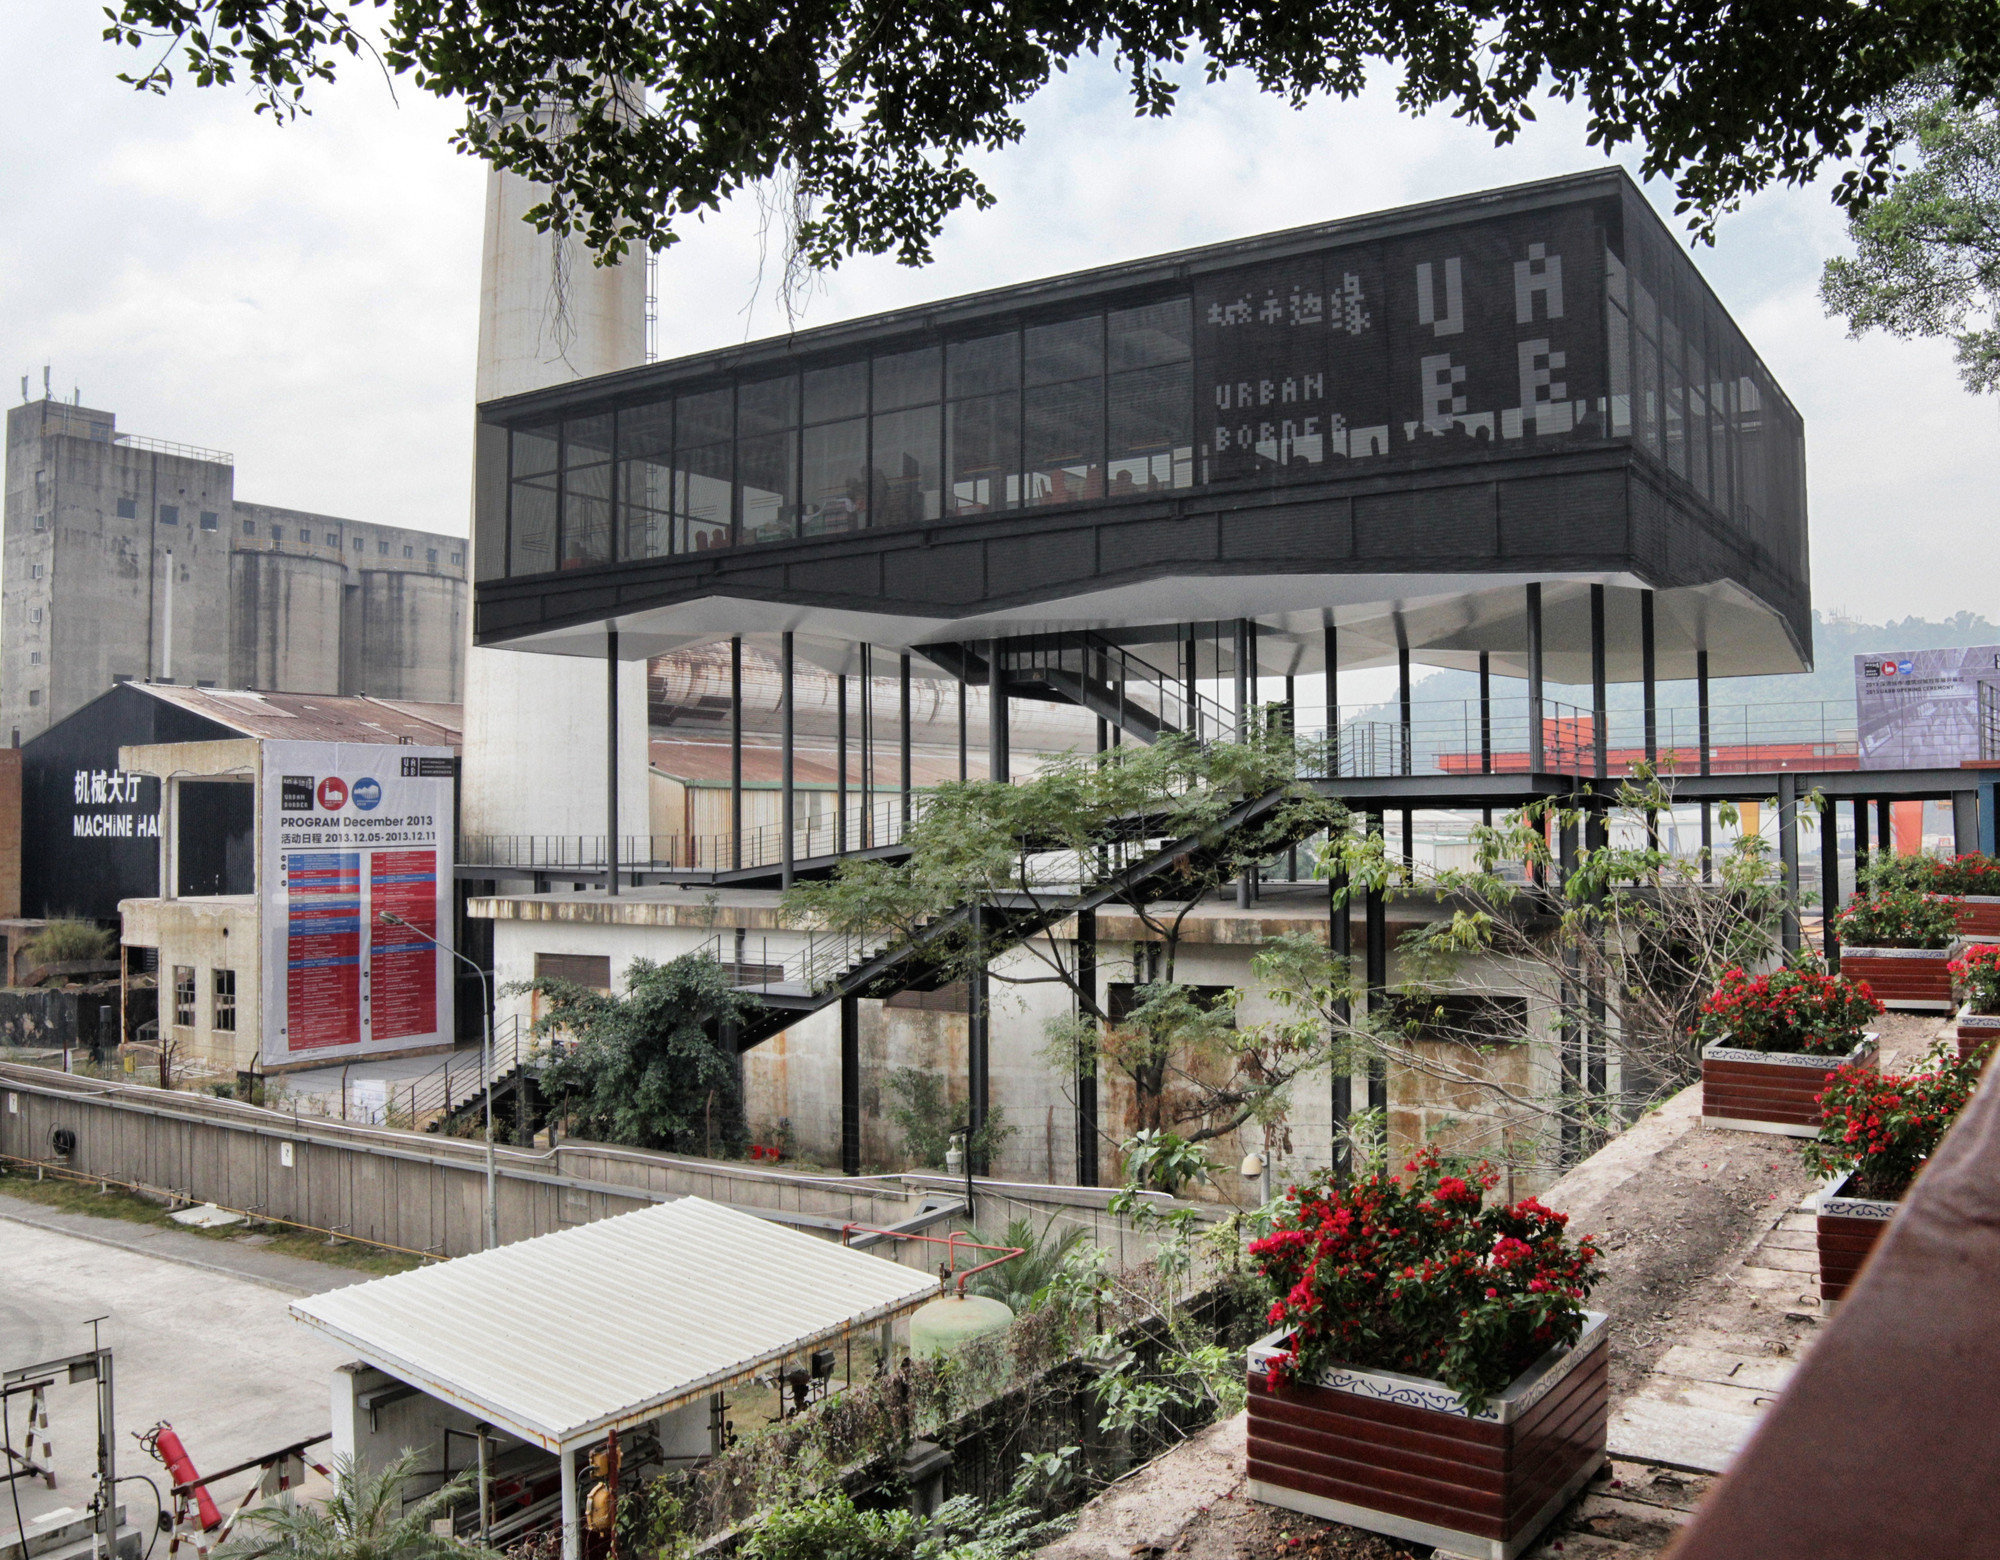 Shenzhen Biennale: The Value Factory and the Urban Border, Entrance pavilion at the Value Factory © ArchDaily